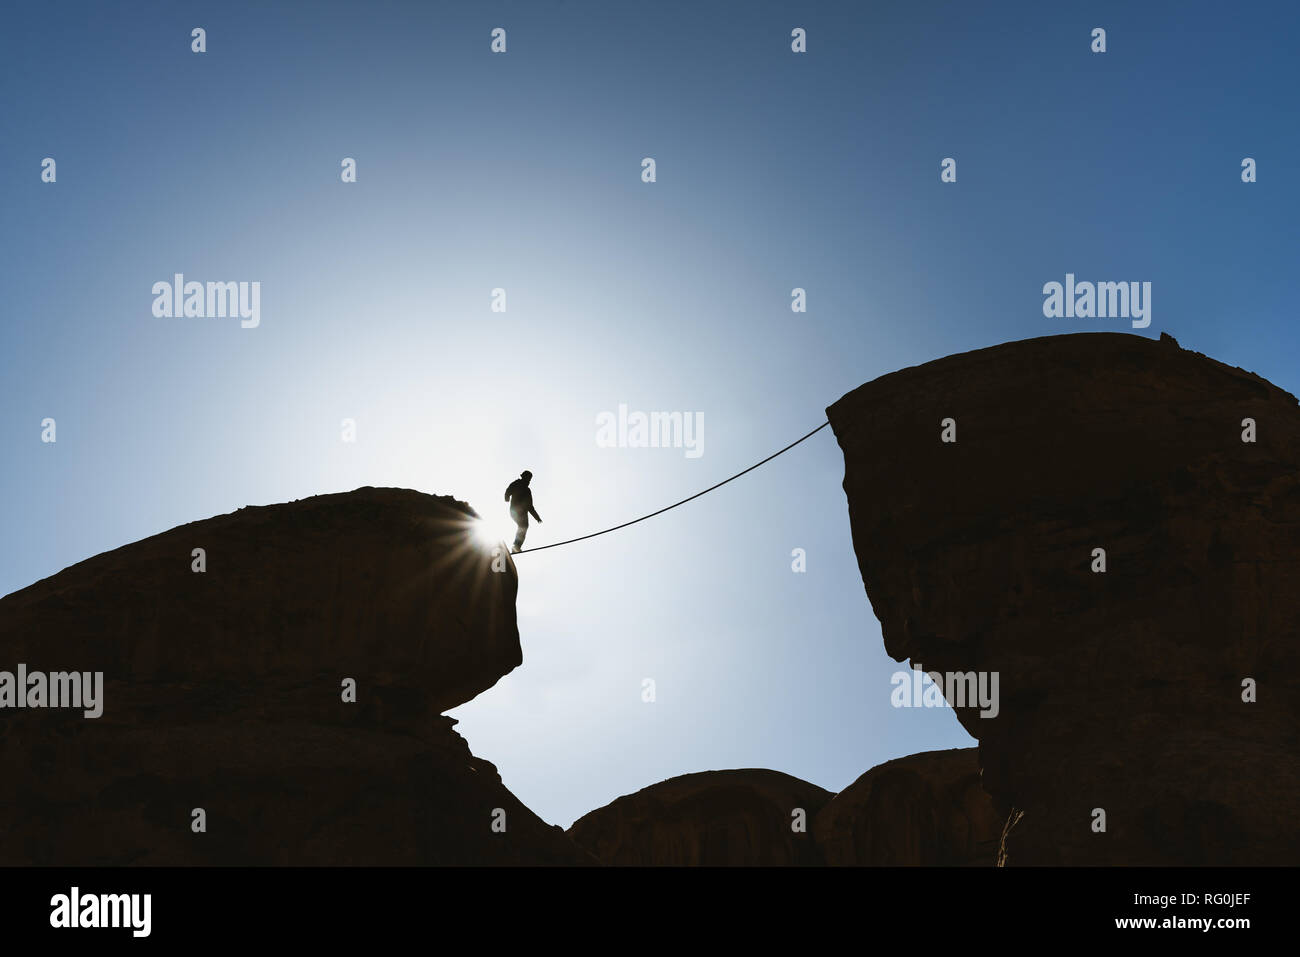 a man balancing walking on rope over precipice. Business, risk taking, challenge,bravery, and concentration - Stock Image